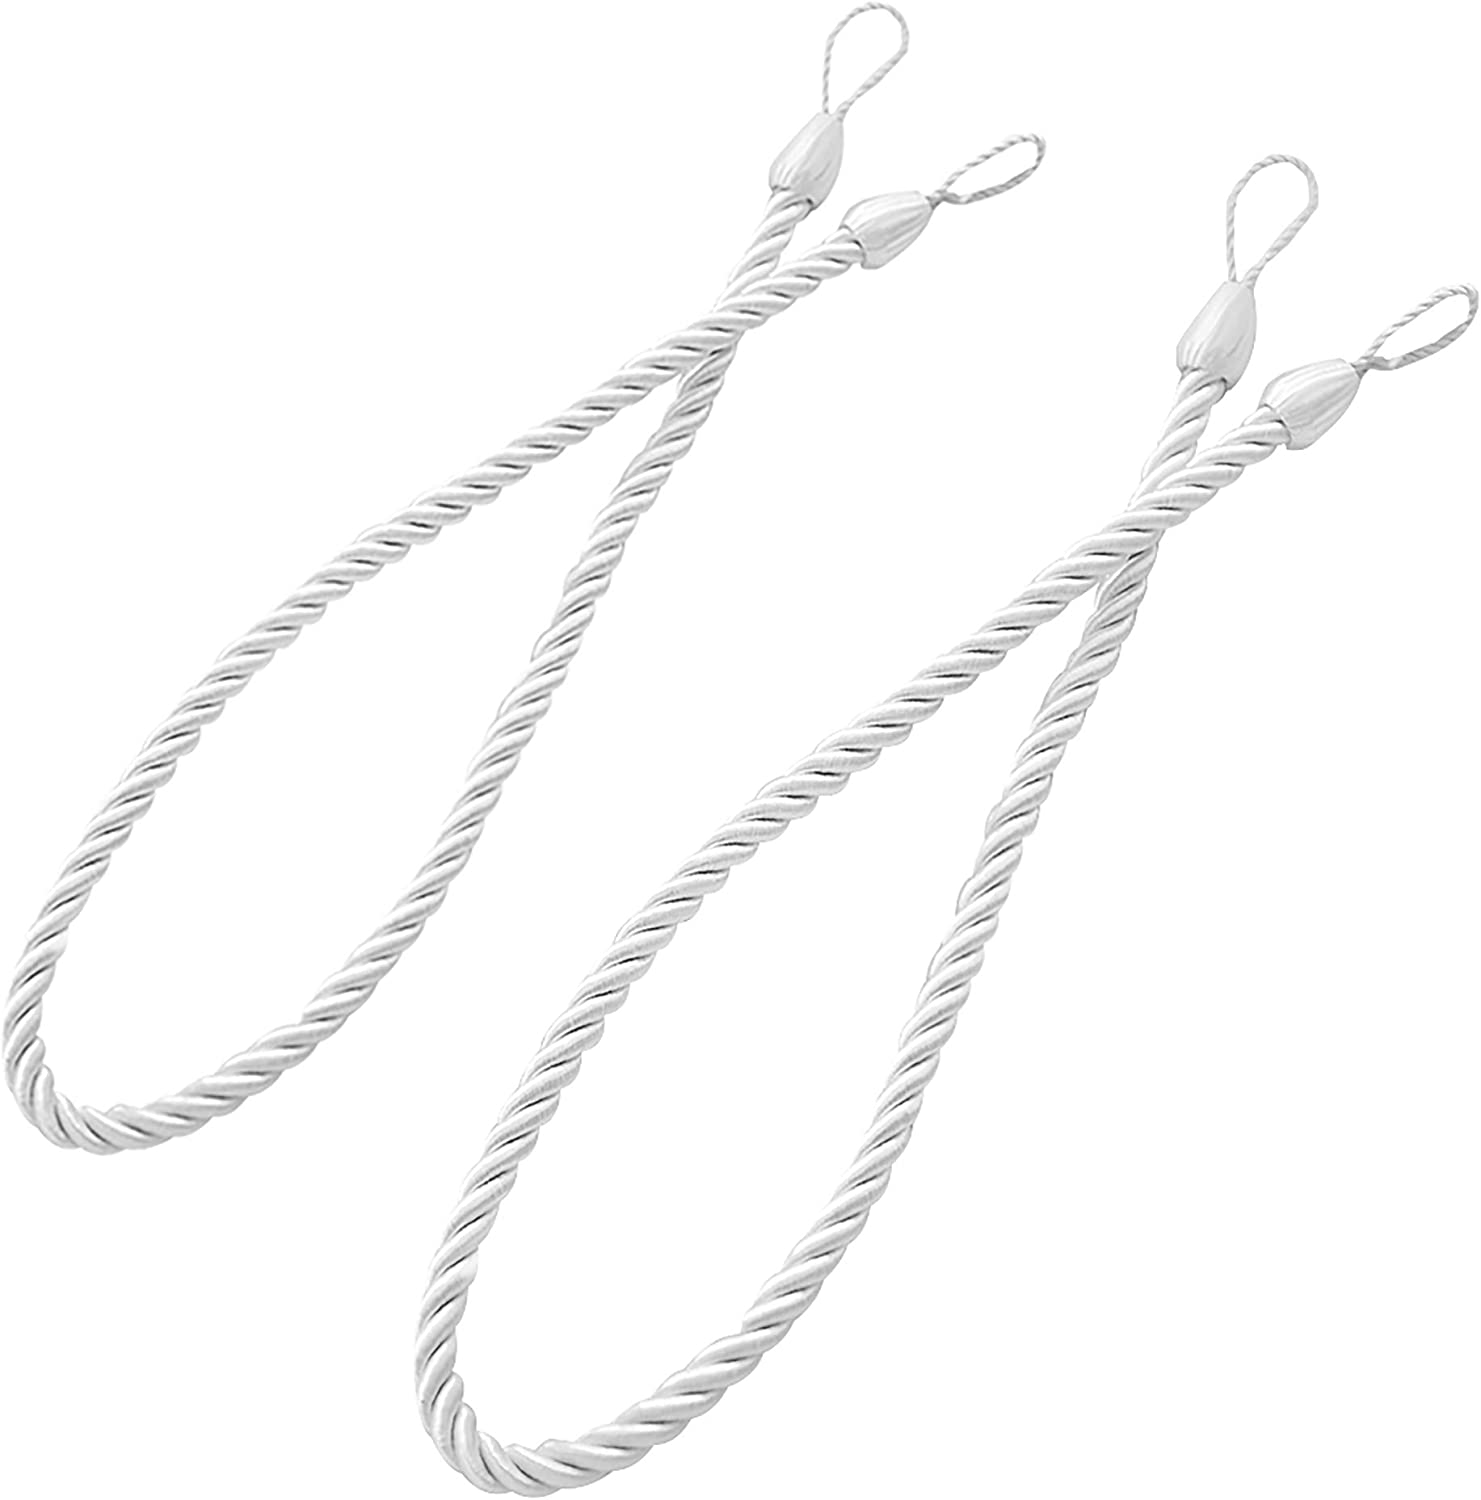 Ropes Holdbacks For Curtain Drapes Natural Thick Ropes Tiebacks With Buckle Cord For Indoor Outdoor Use With Hook Or Directly For Window Treatment Panels Set Of 2 Silver